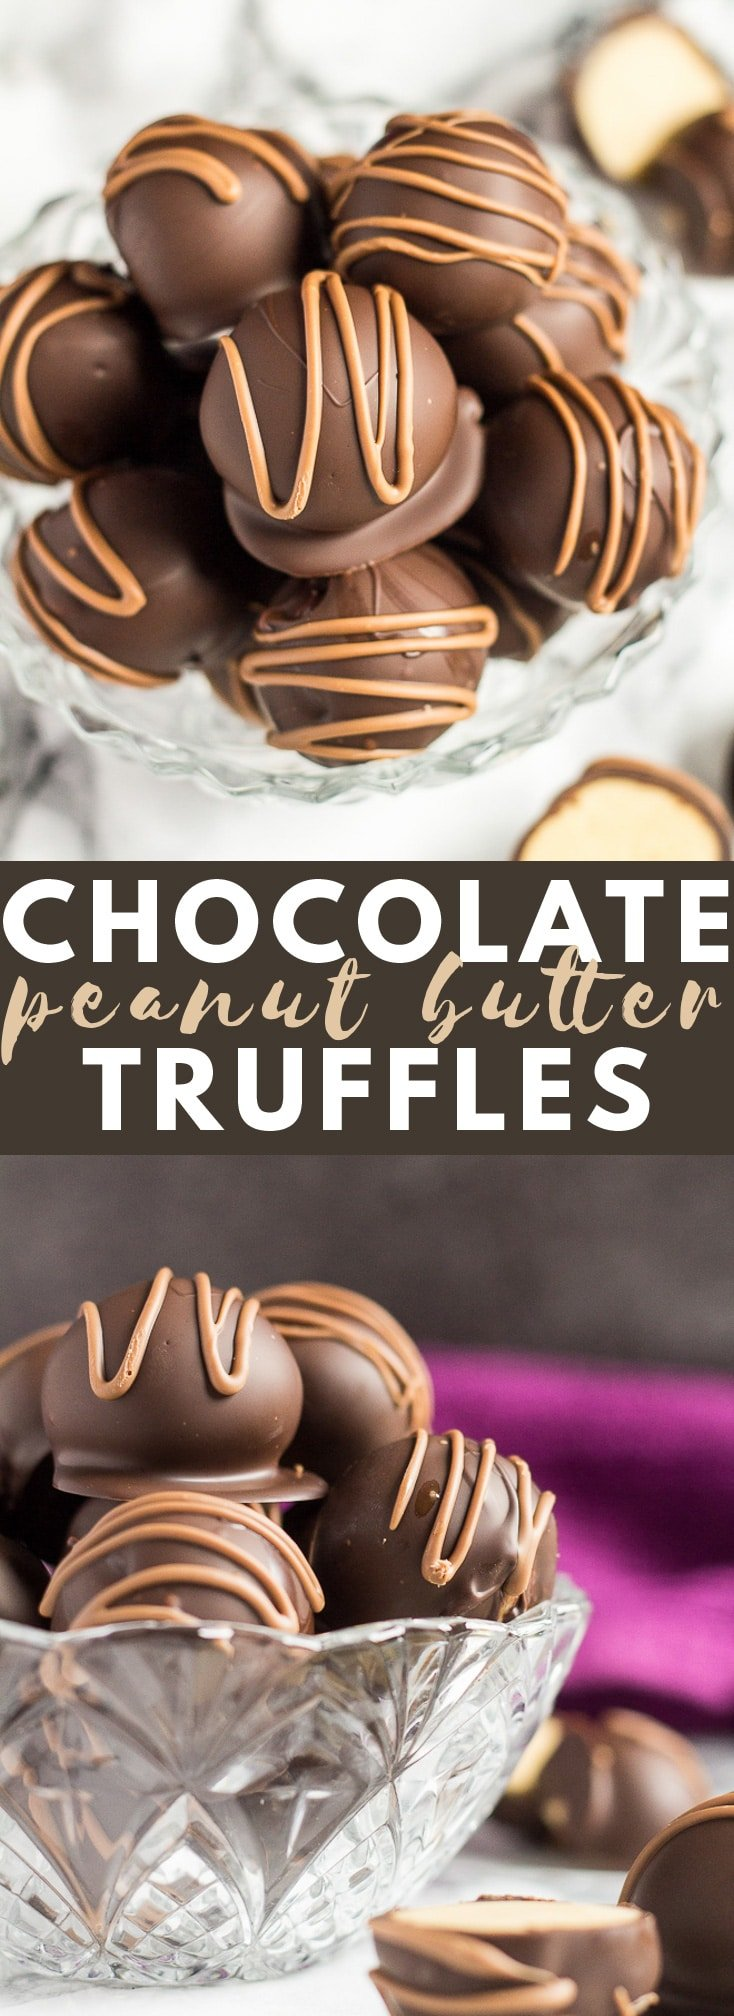 No-Bake Peanut Butter Truffles - Deliciously creamy bite-sized no-bake peanut butter balls, coated with dark chocolate, and drizzled with milk chocolate!